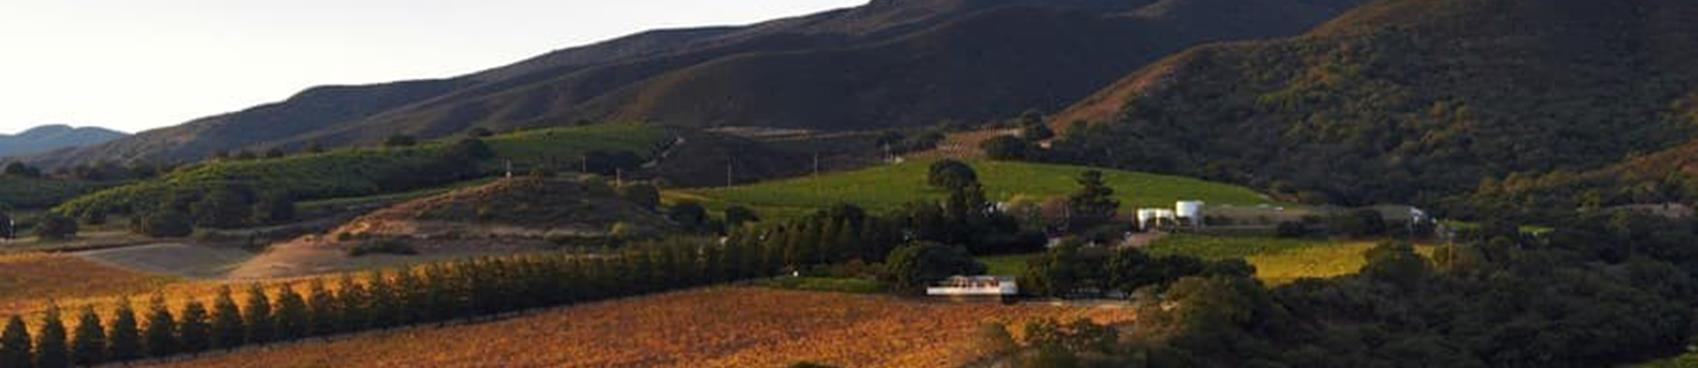 A image of Hahn Family Wines